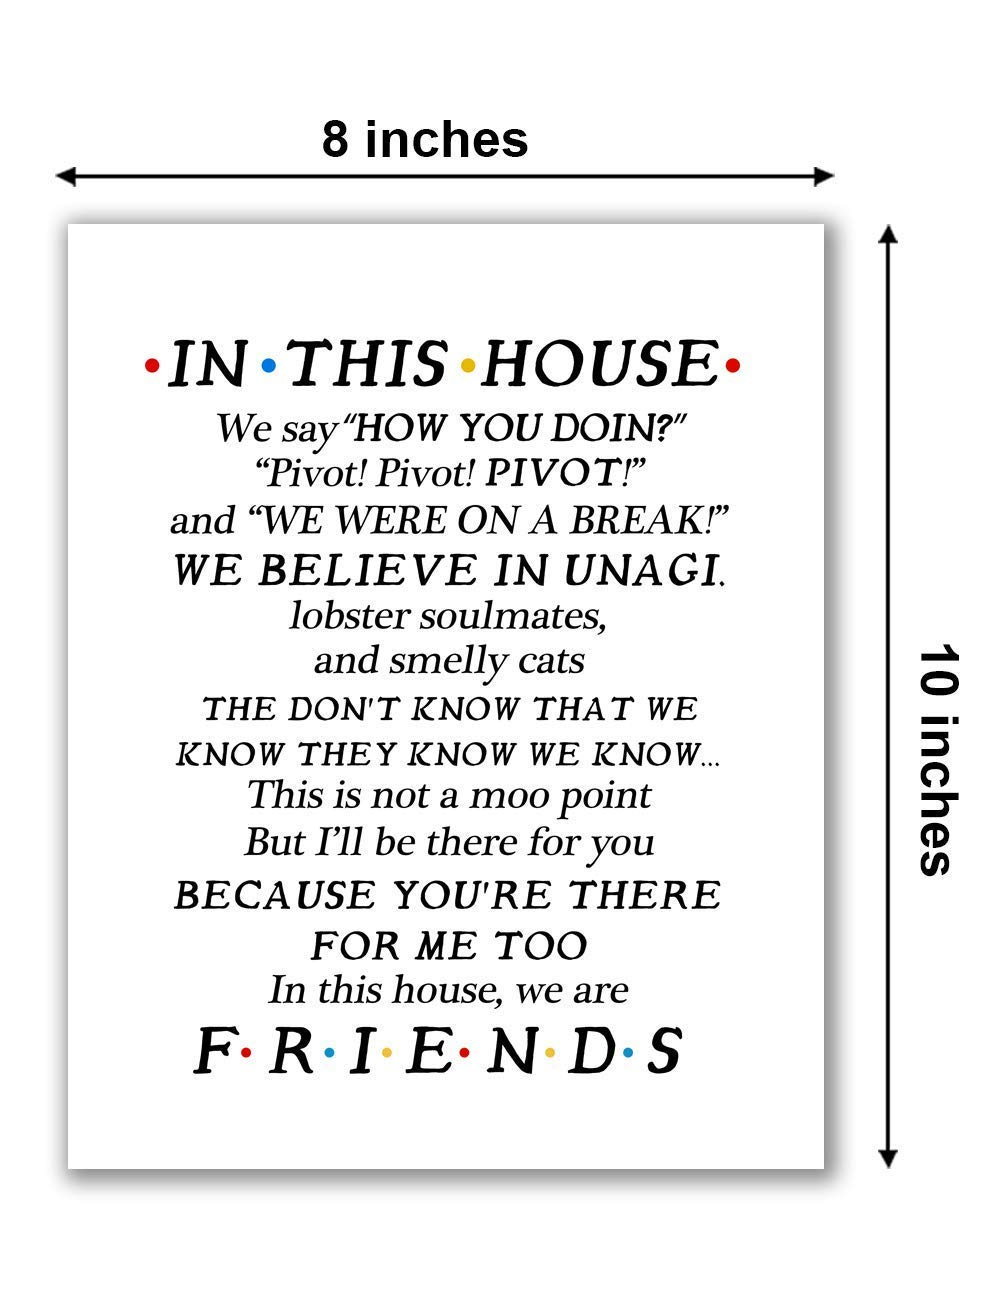 Friends In This House Poster We Say How You Doin Poster Without Frame US Supplie